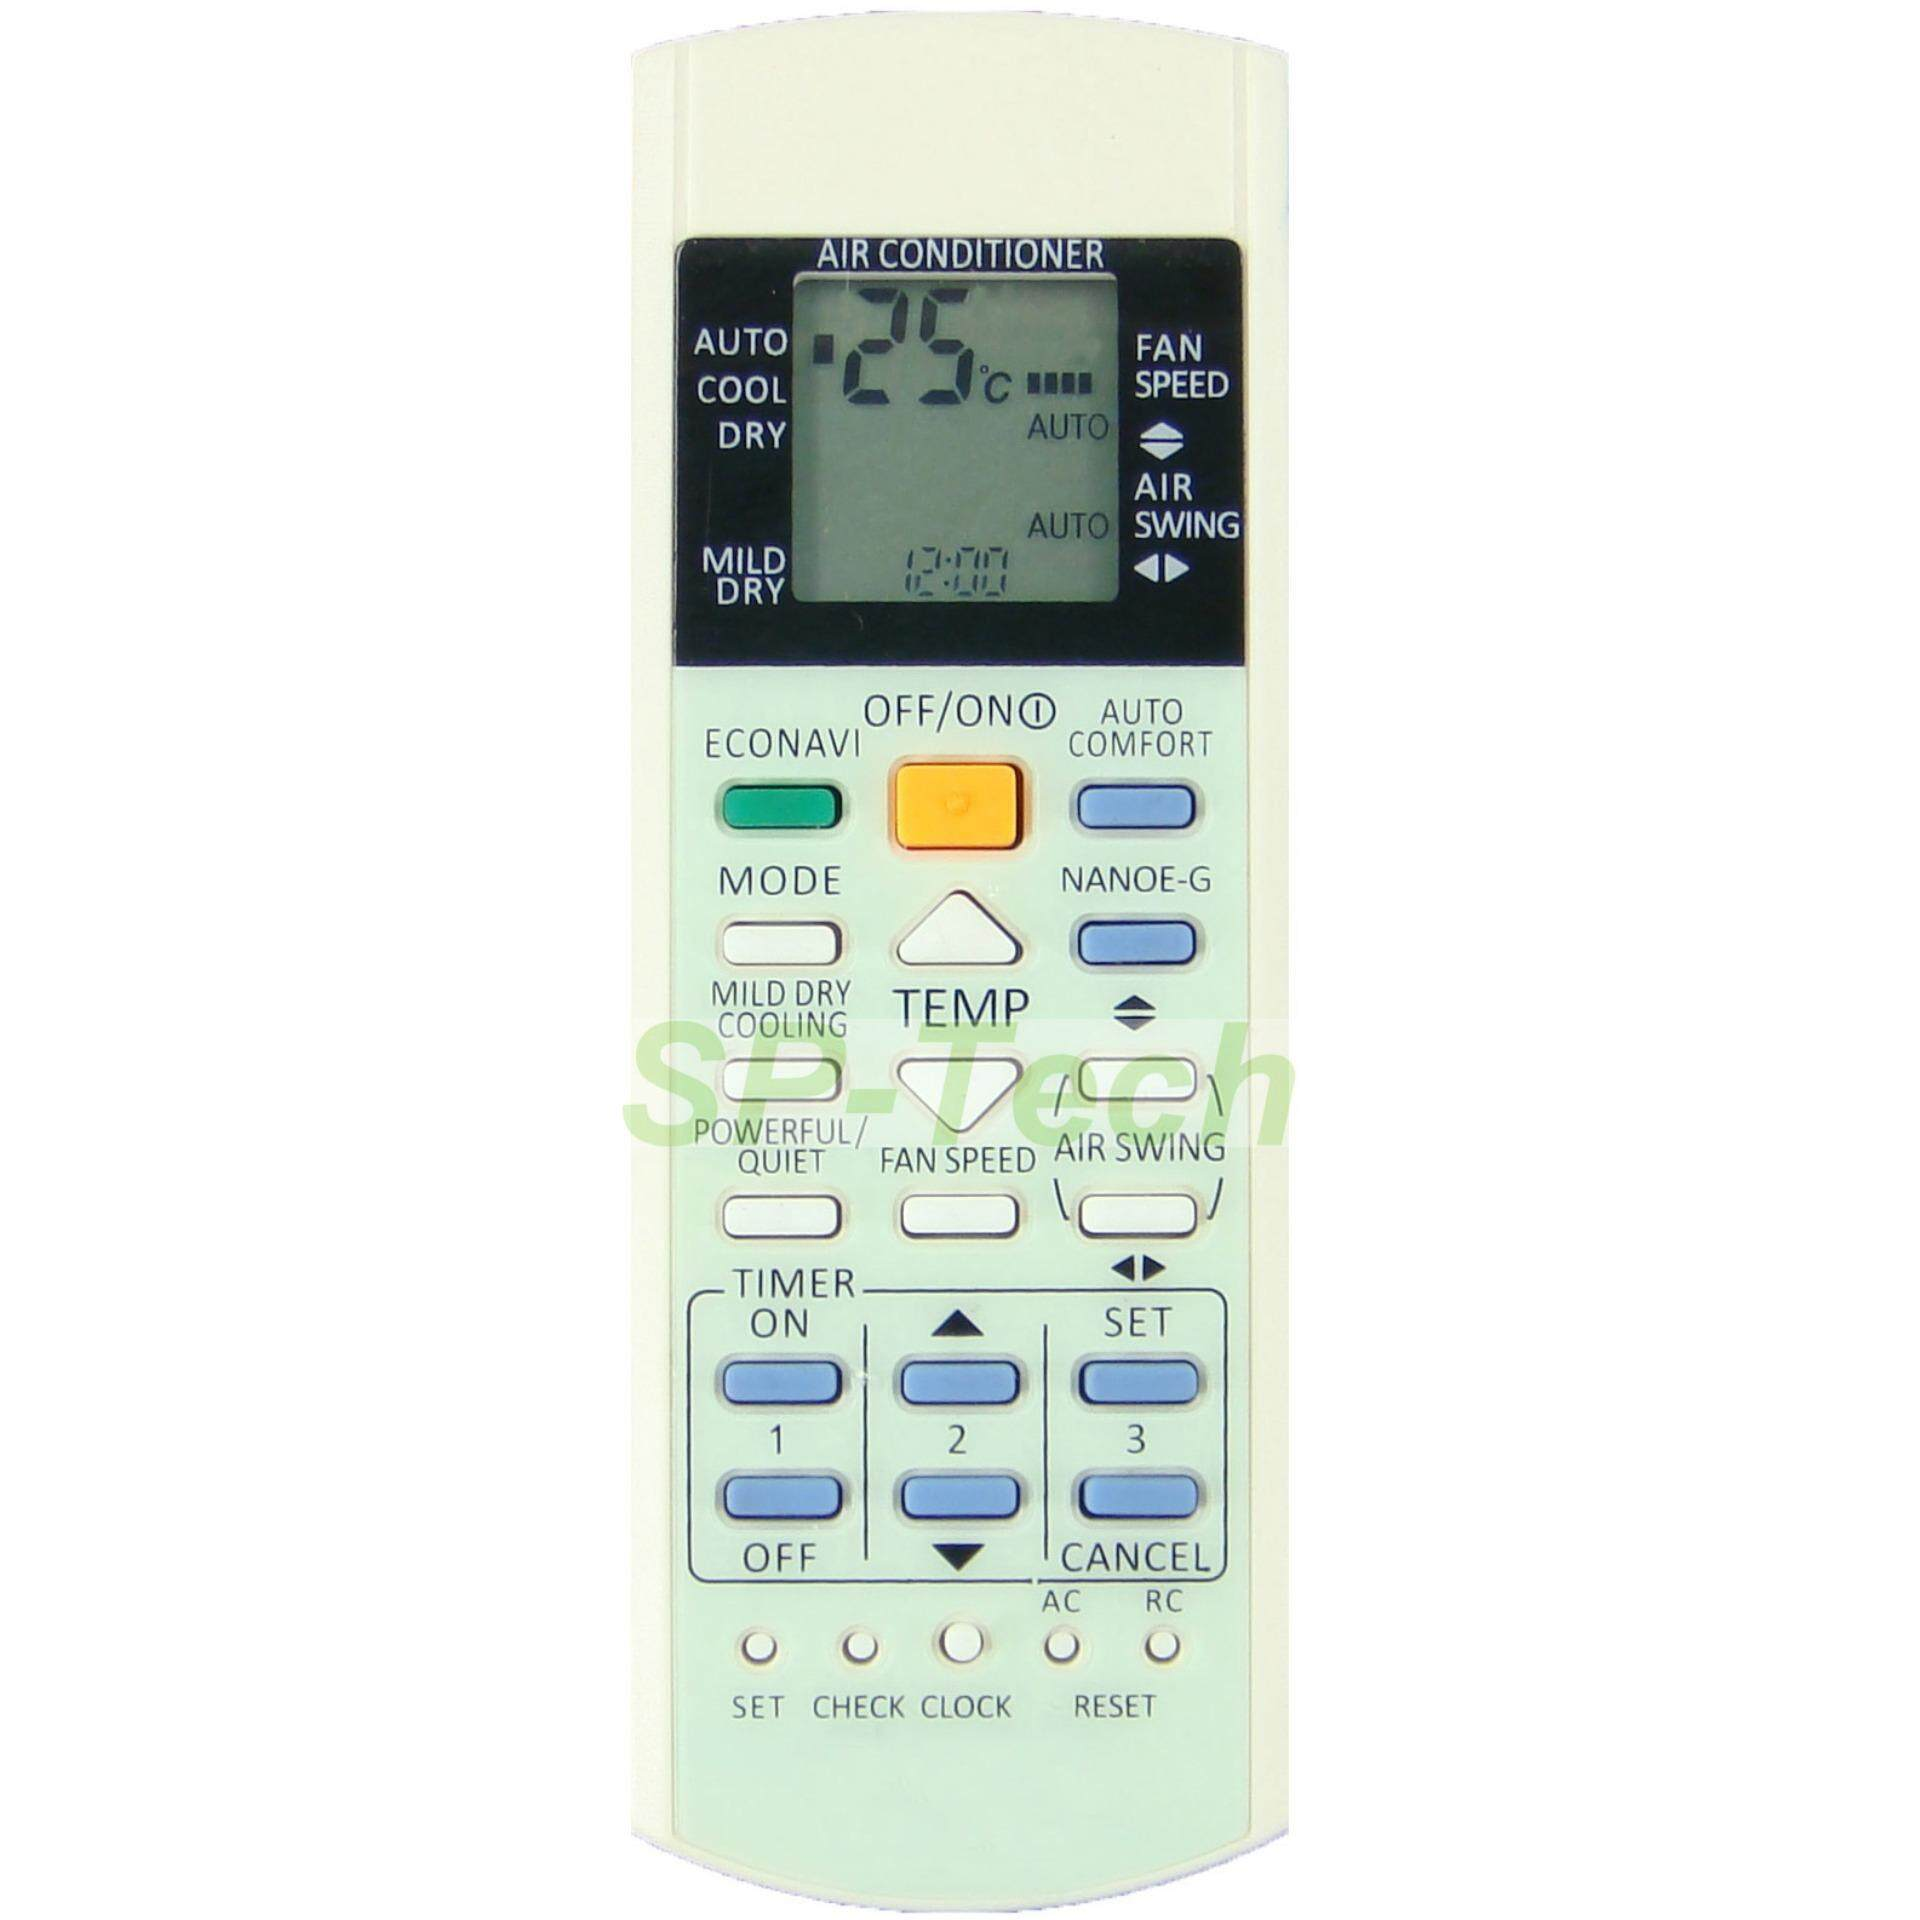 CS-S15PKH PANASONIC AIR CONDITIONING REMOTE CONTROL (BUY 2 FREE 1)